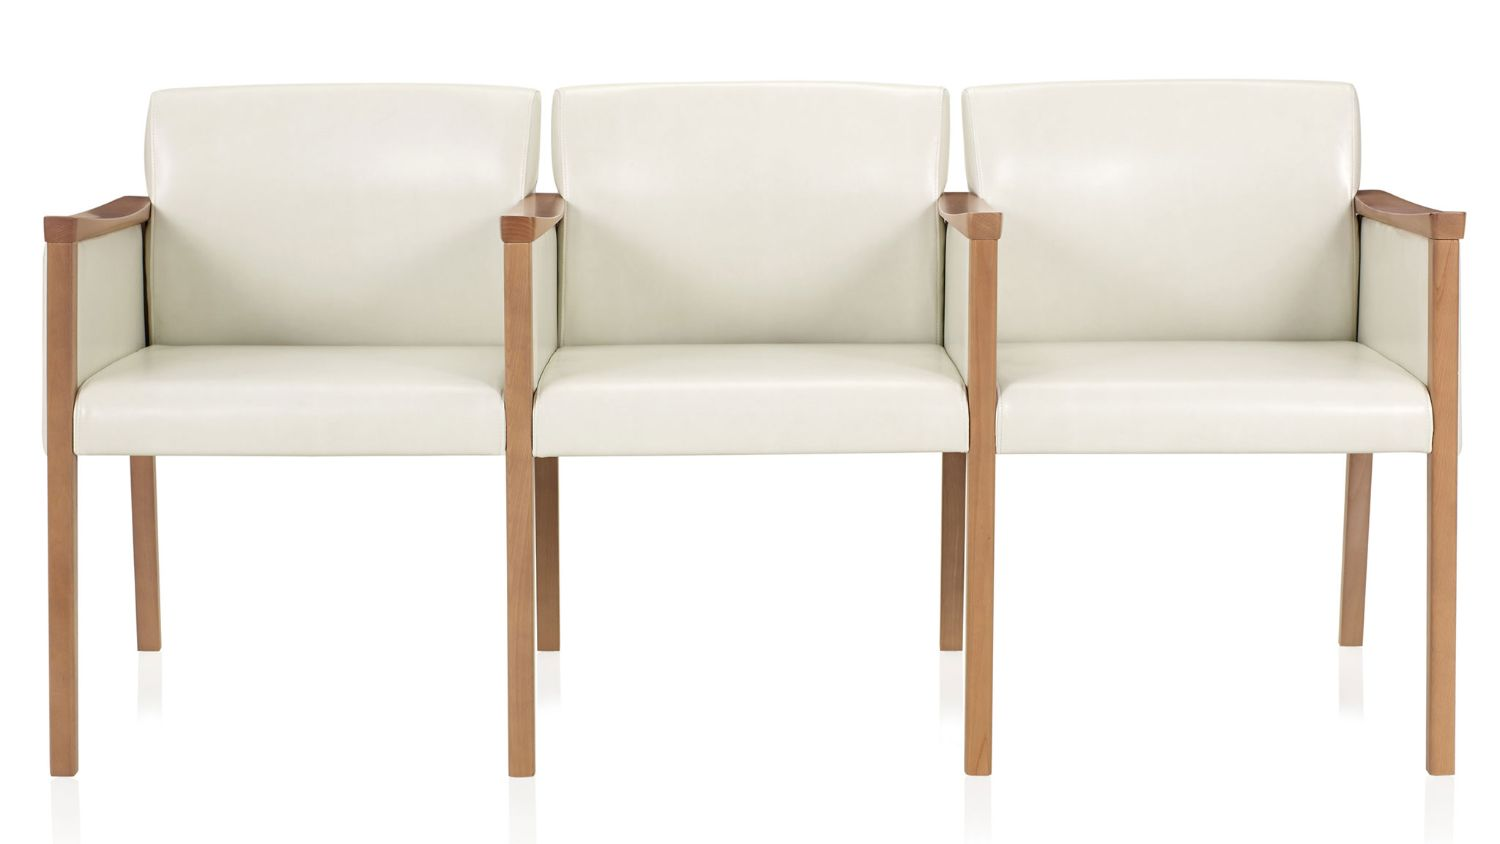 ki affina 3 person wood and leather guest reception bench